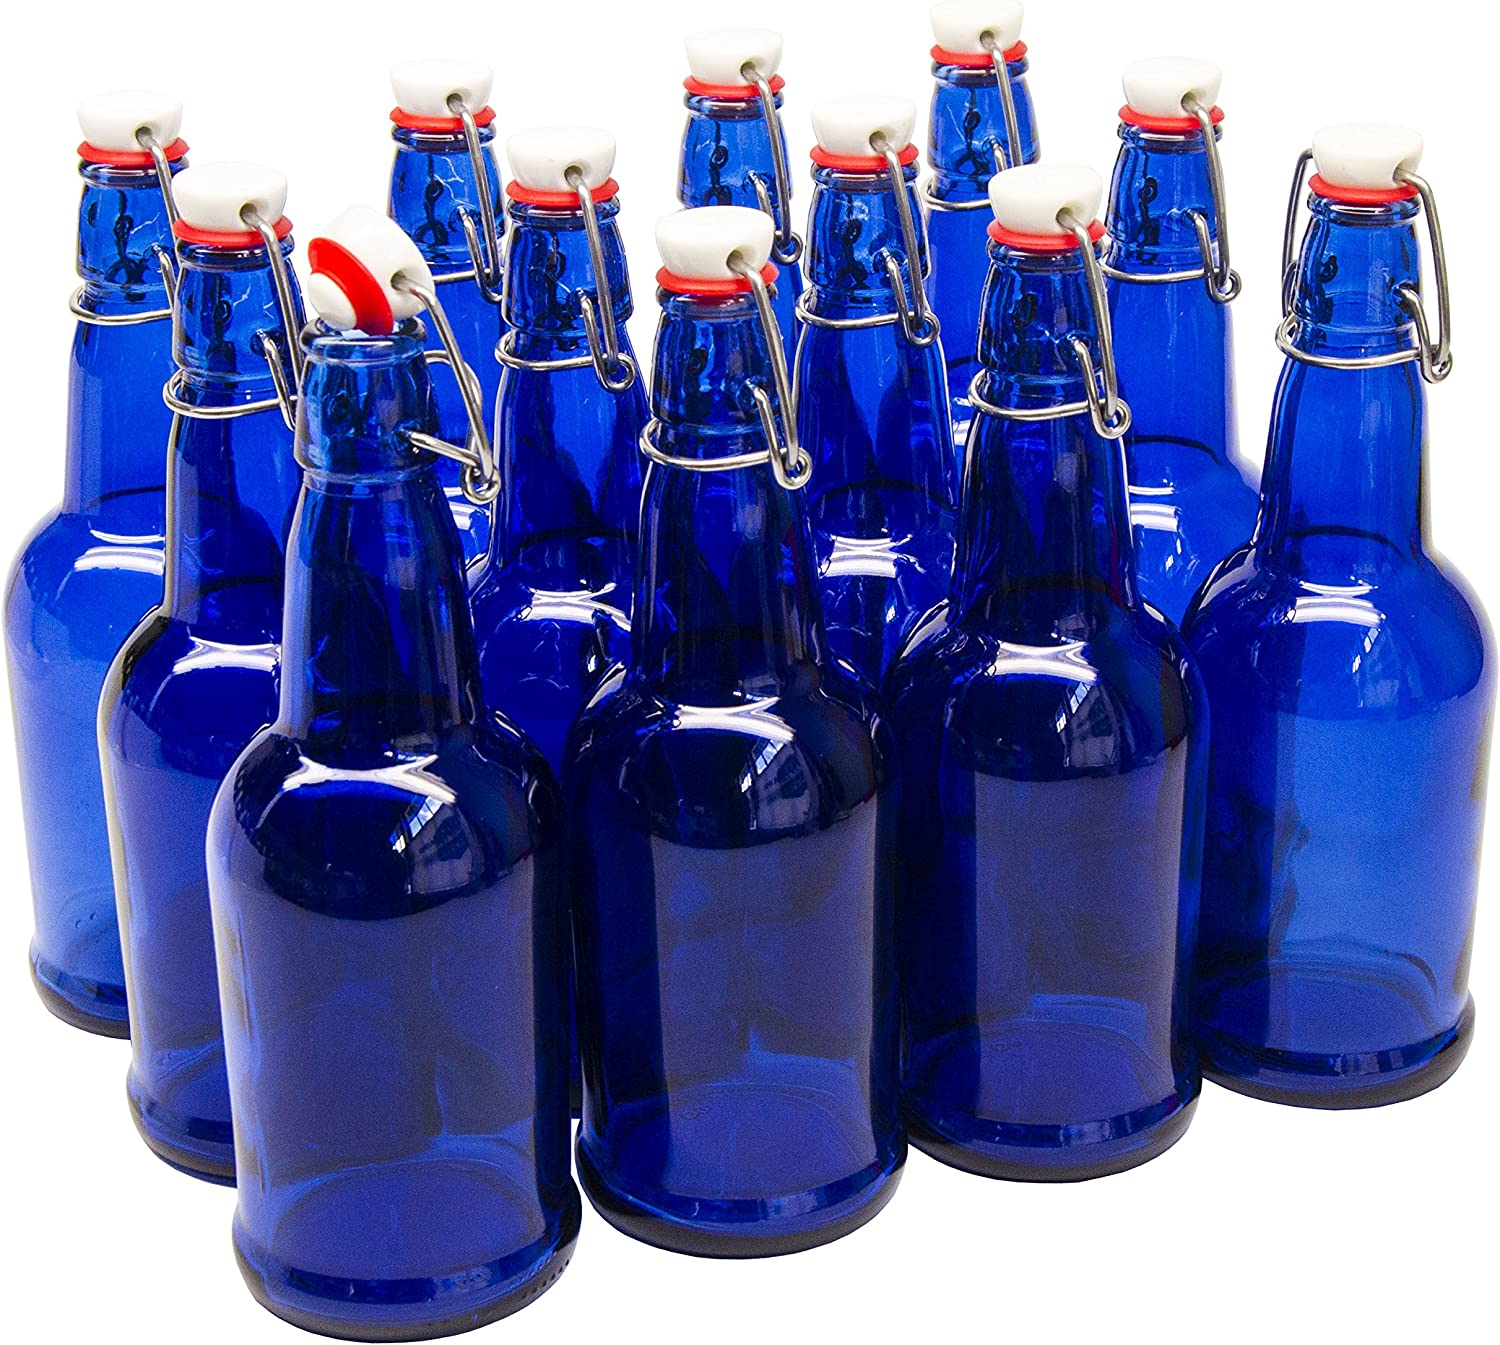 North Mountain Supply 16 oz Cobalt Blue Coated Glass Grolsch-Style Beer Brewing Fermenting Bottles - with Ceramic Swing Top Caps - Case of 12